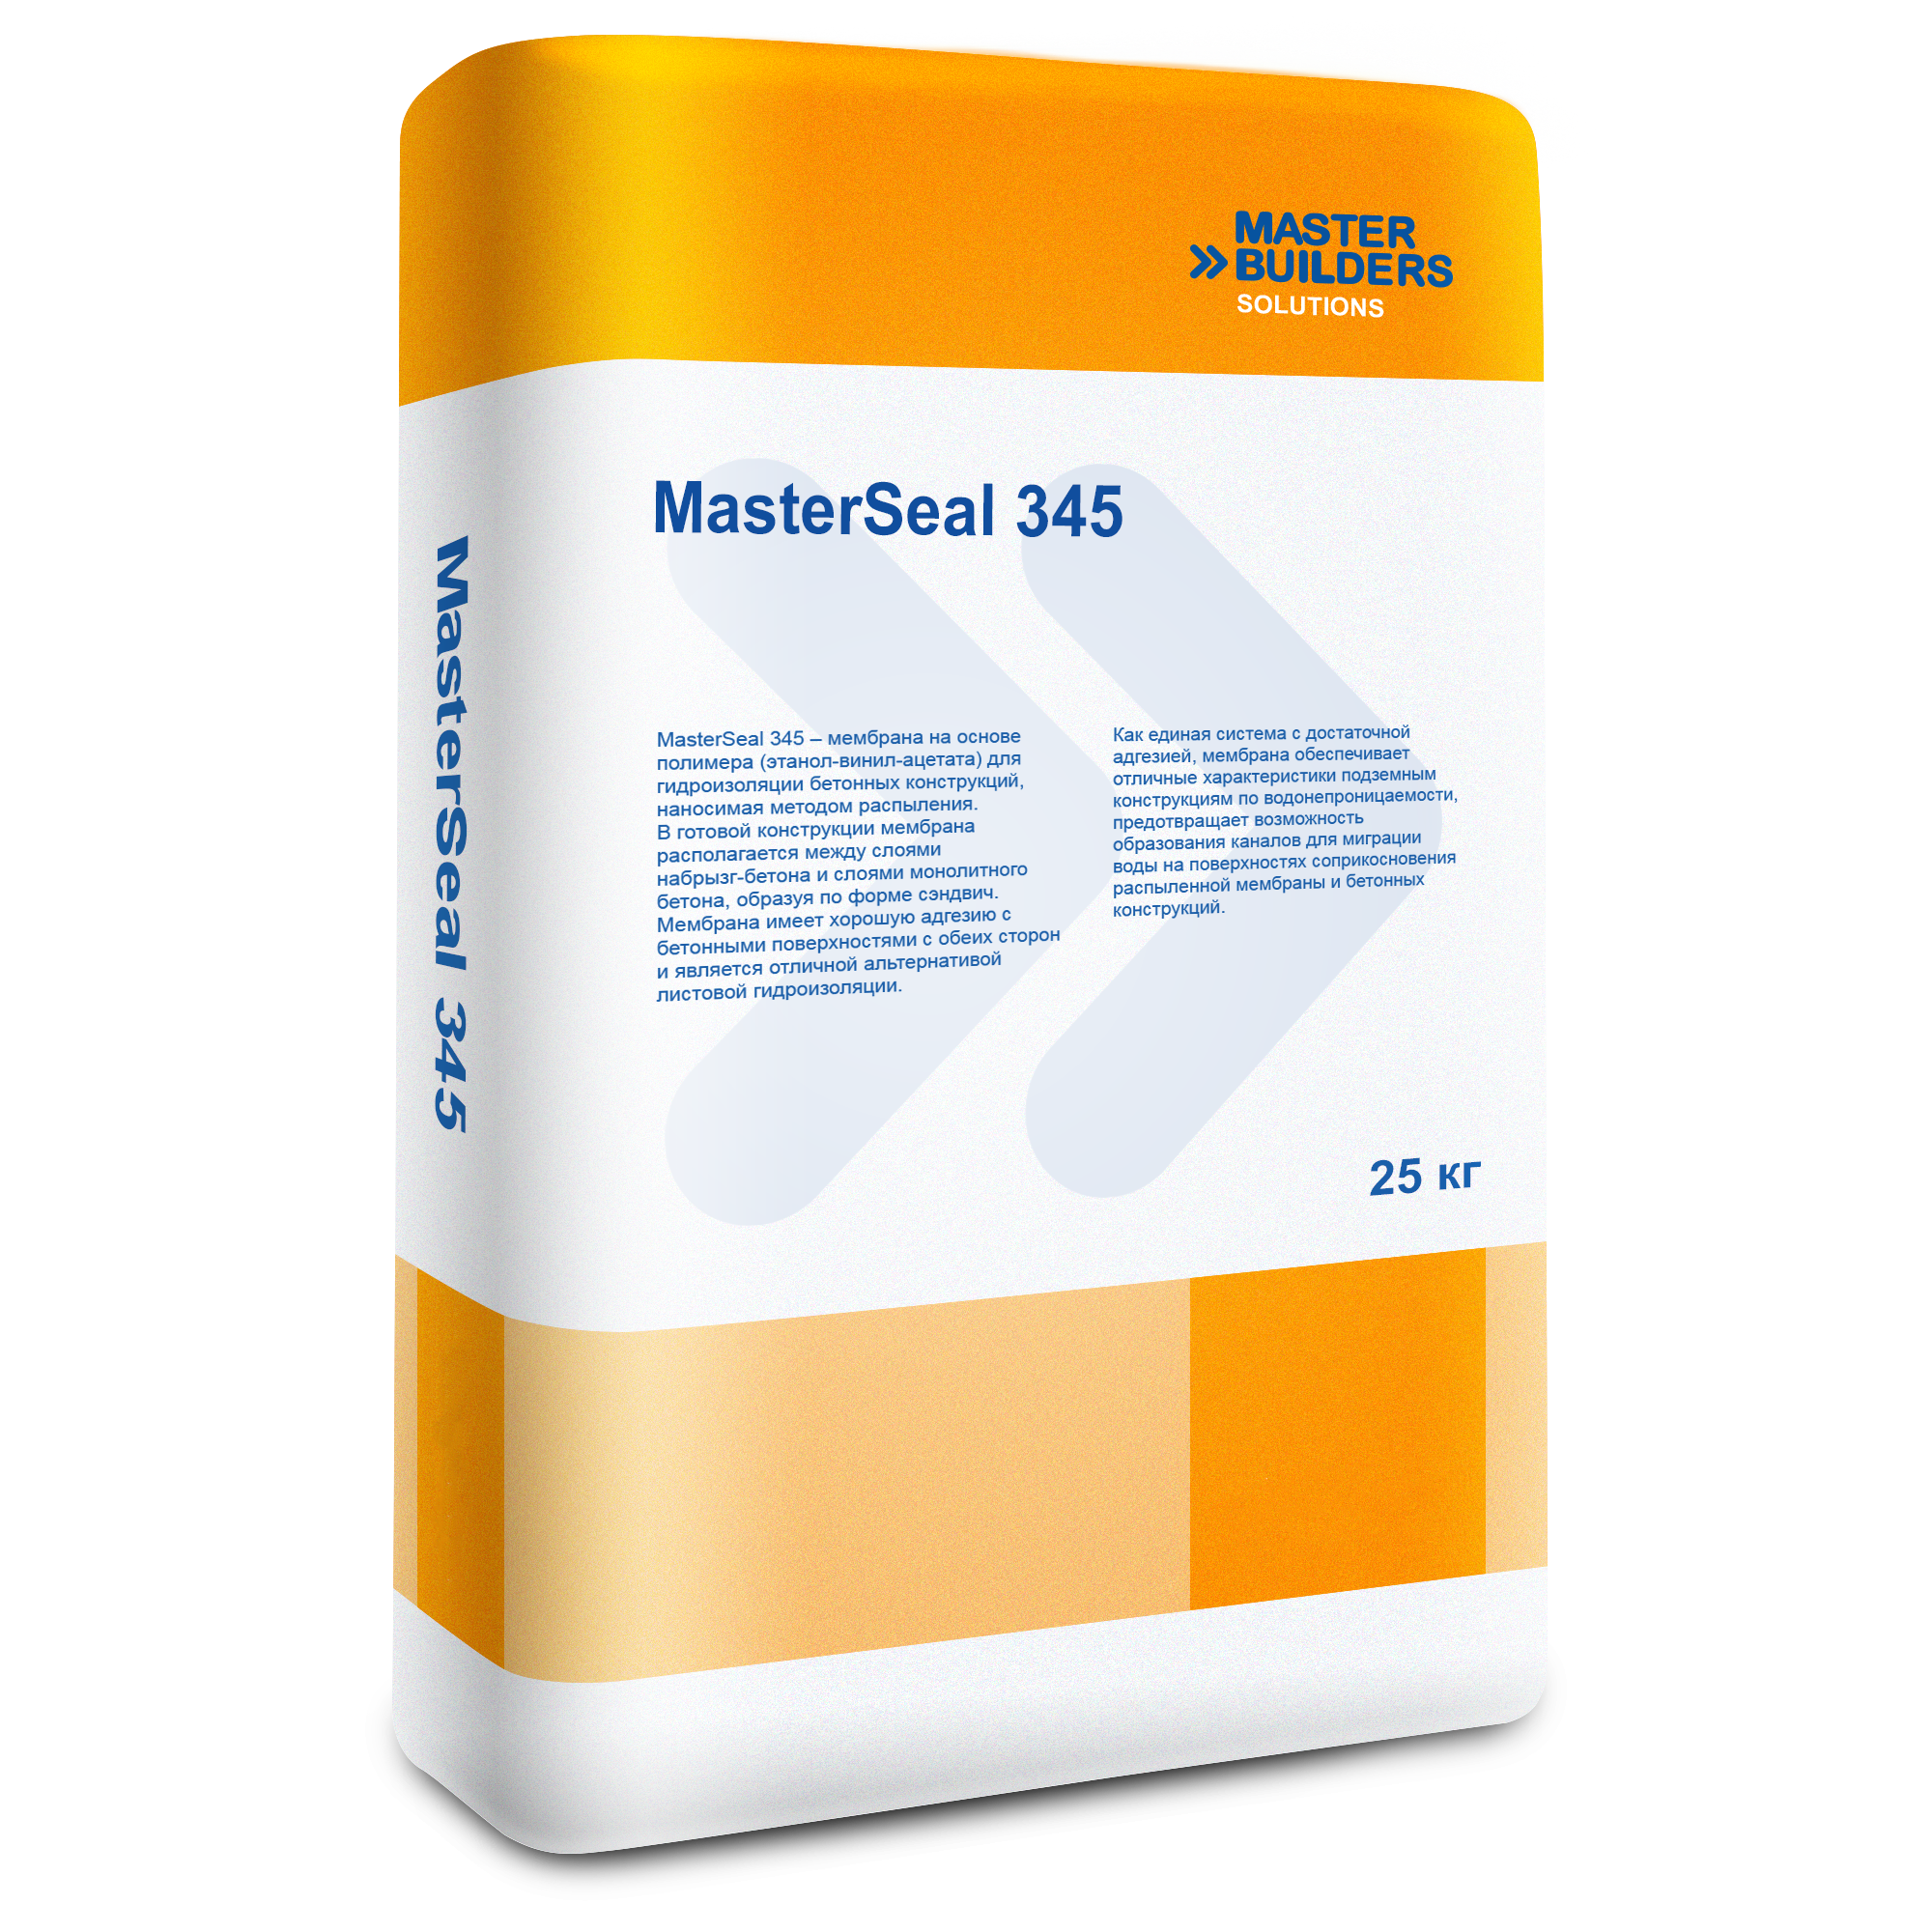 MasterSeal 345